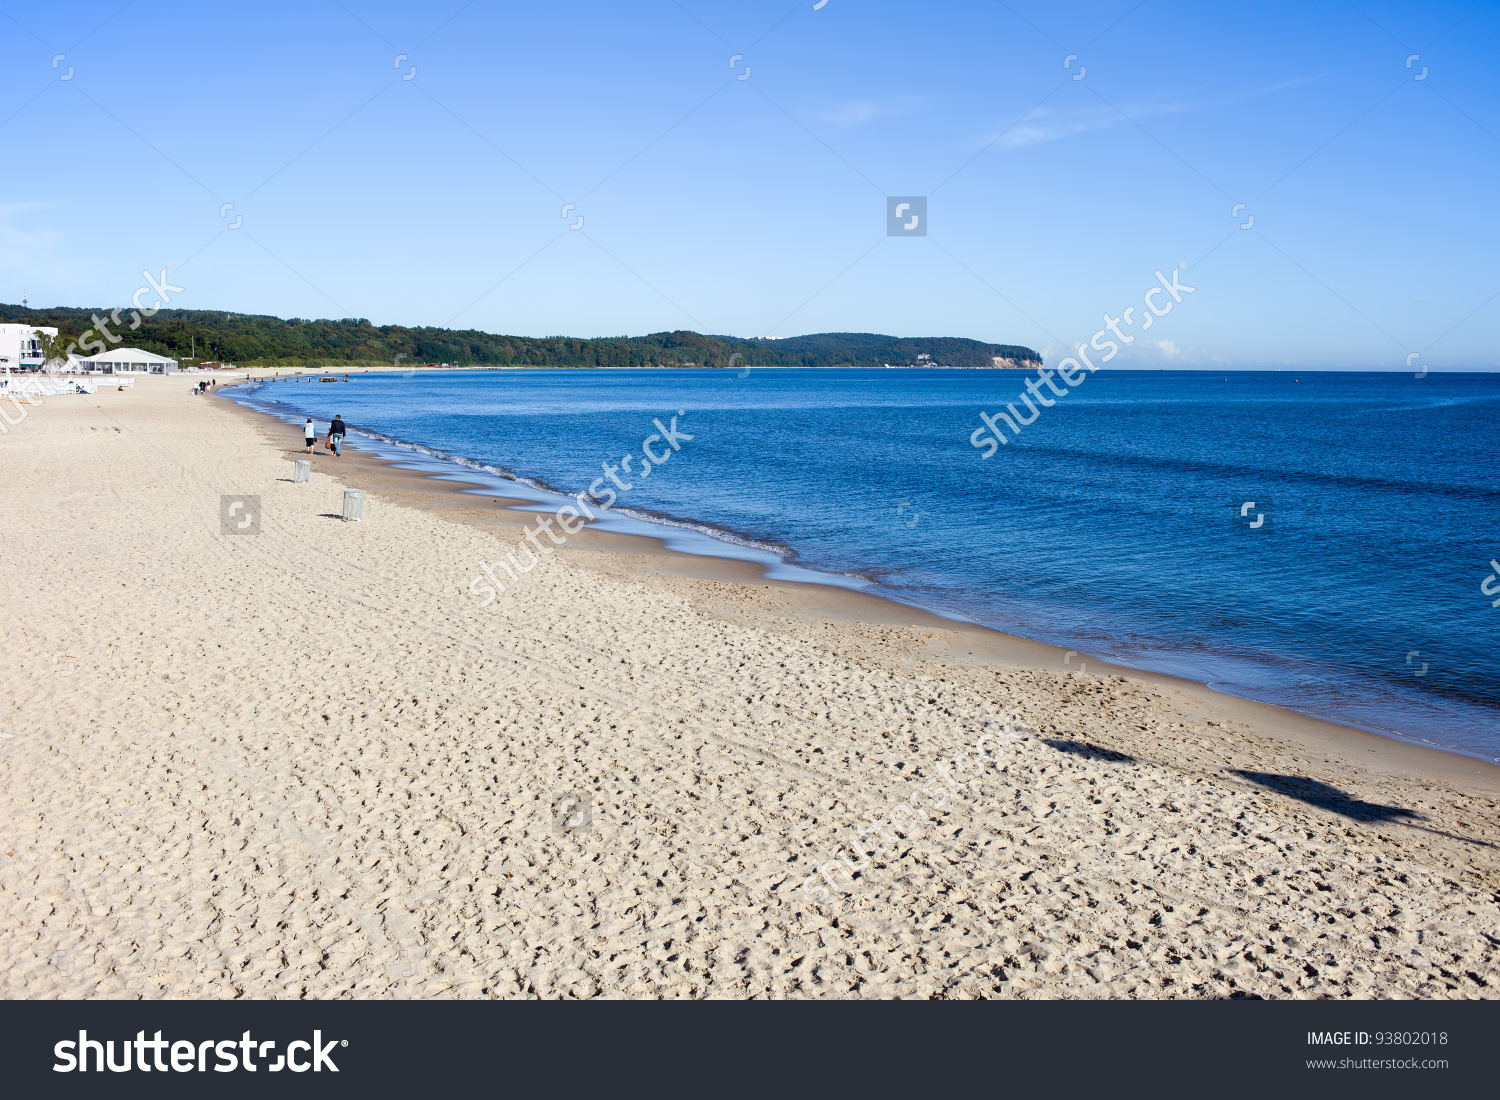 Sandy Beach At The Southern Coast Of The Baltic Sea In Sopot.